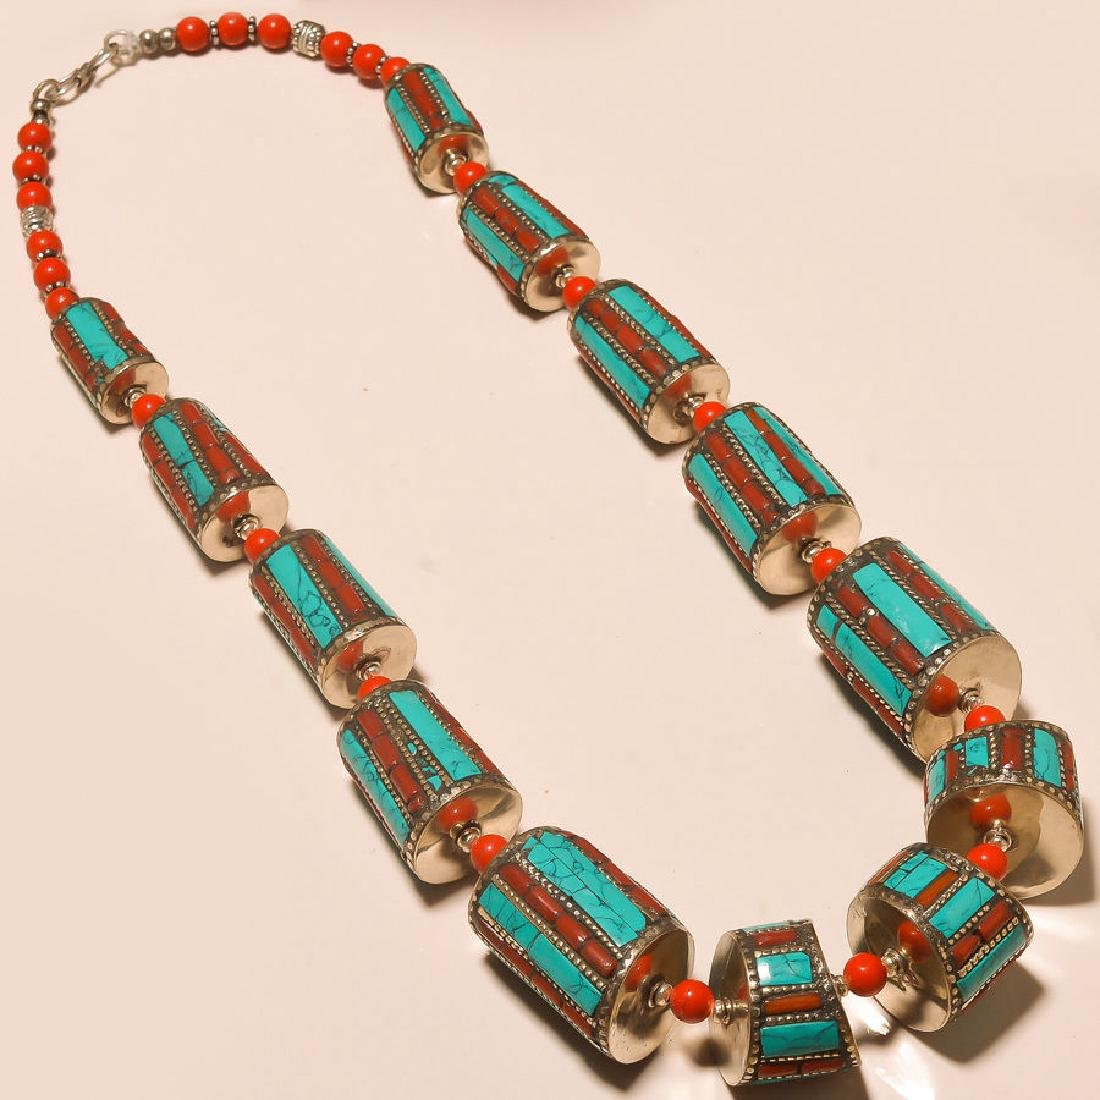 TIBETAN TURQUOISE WITH RED CORAL 925 NECKLACE